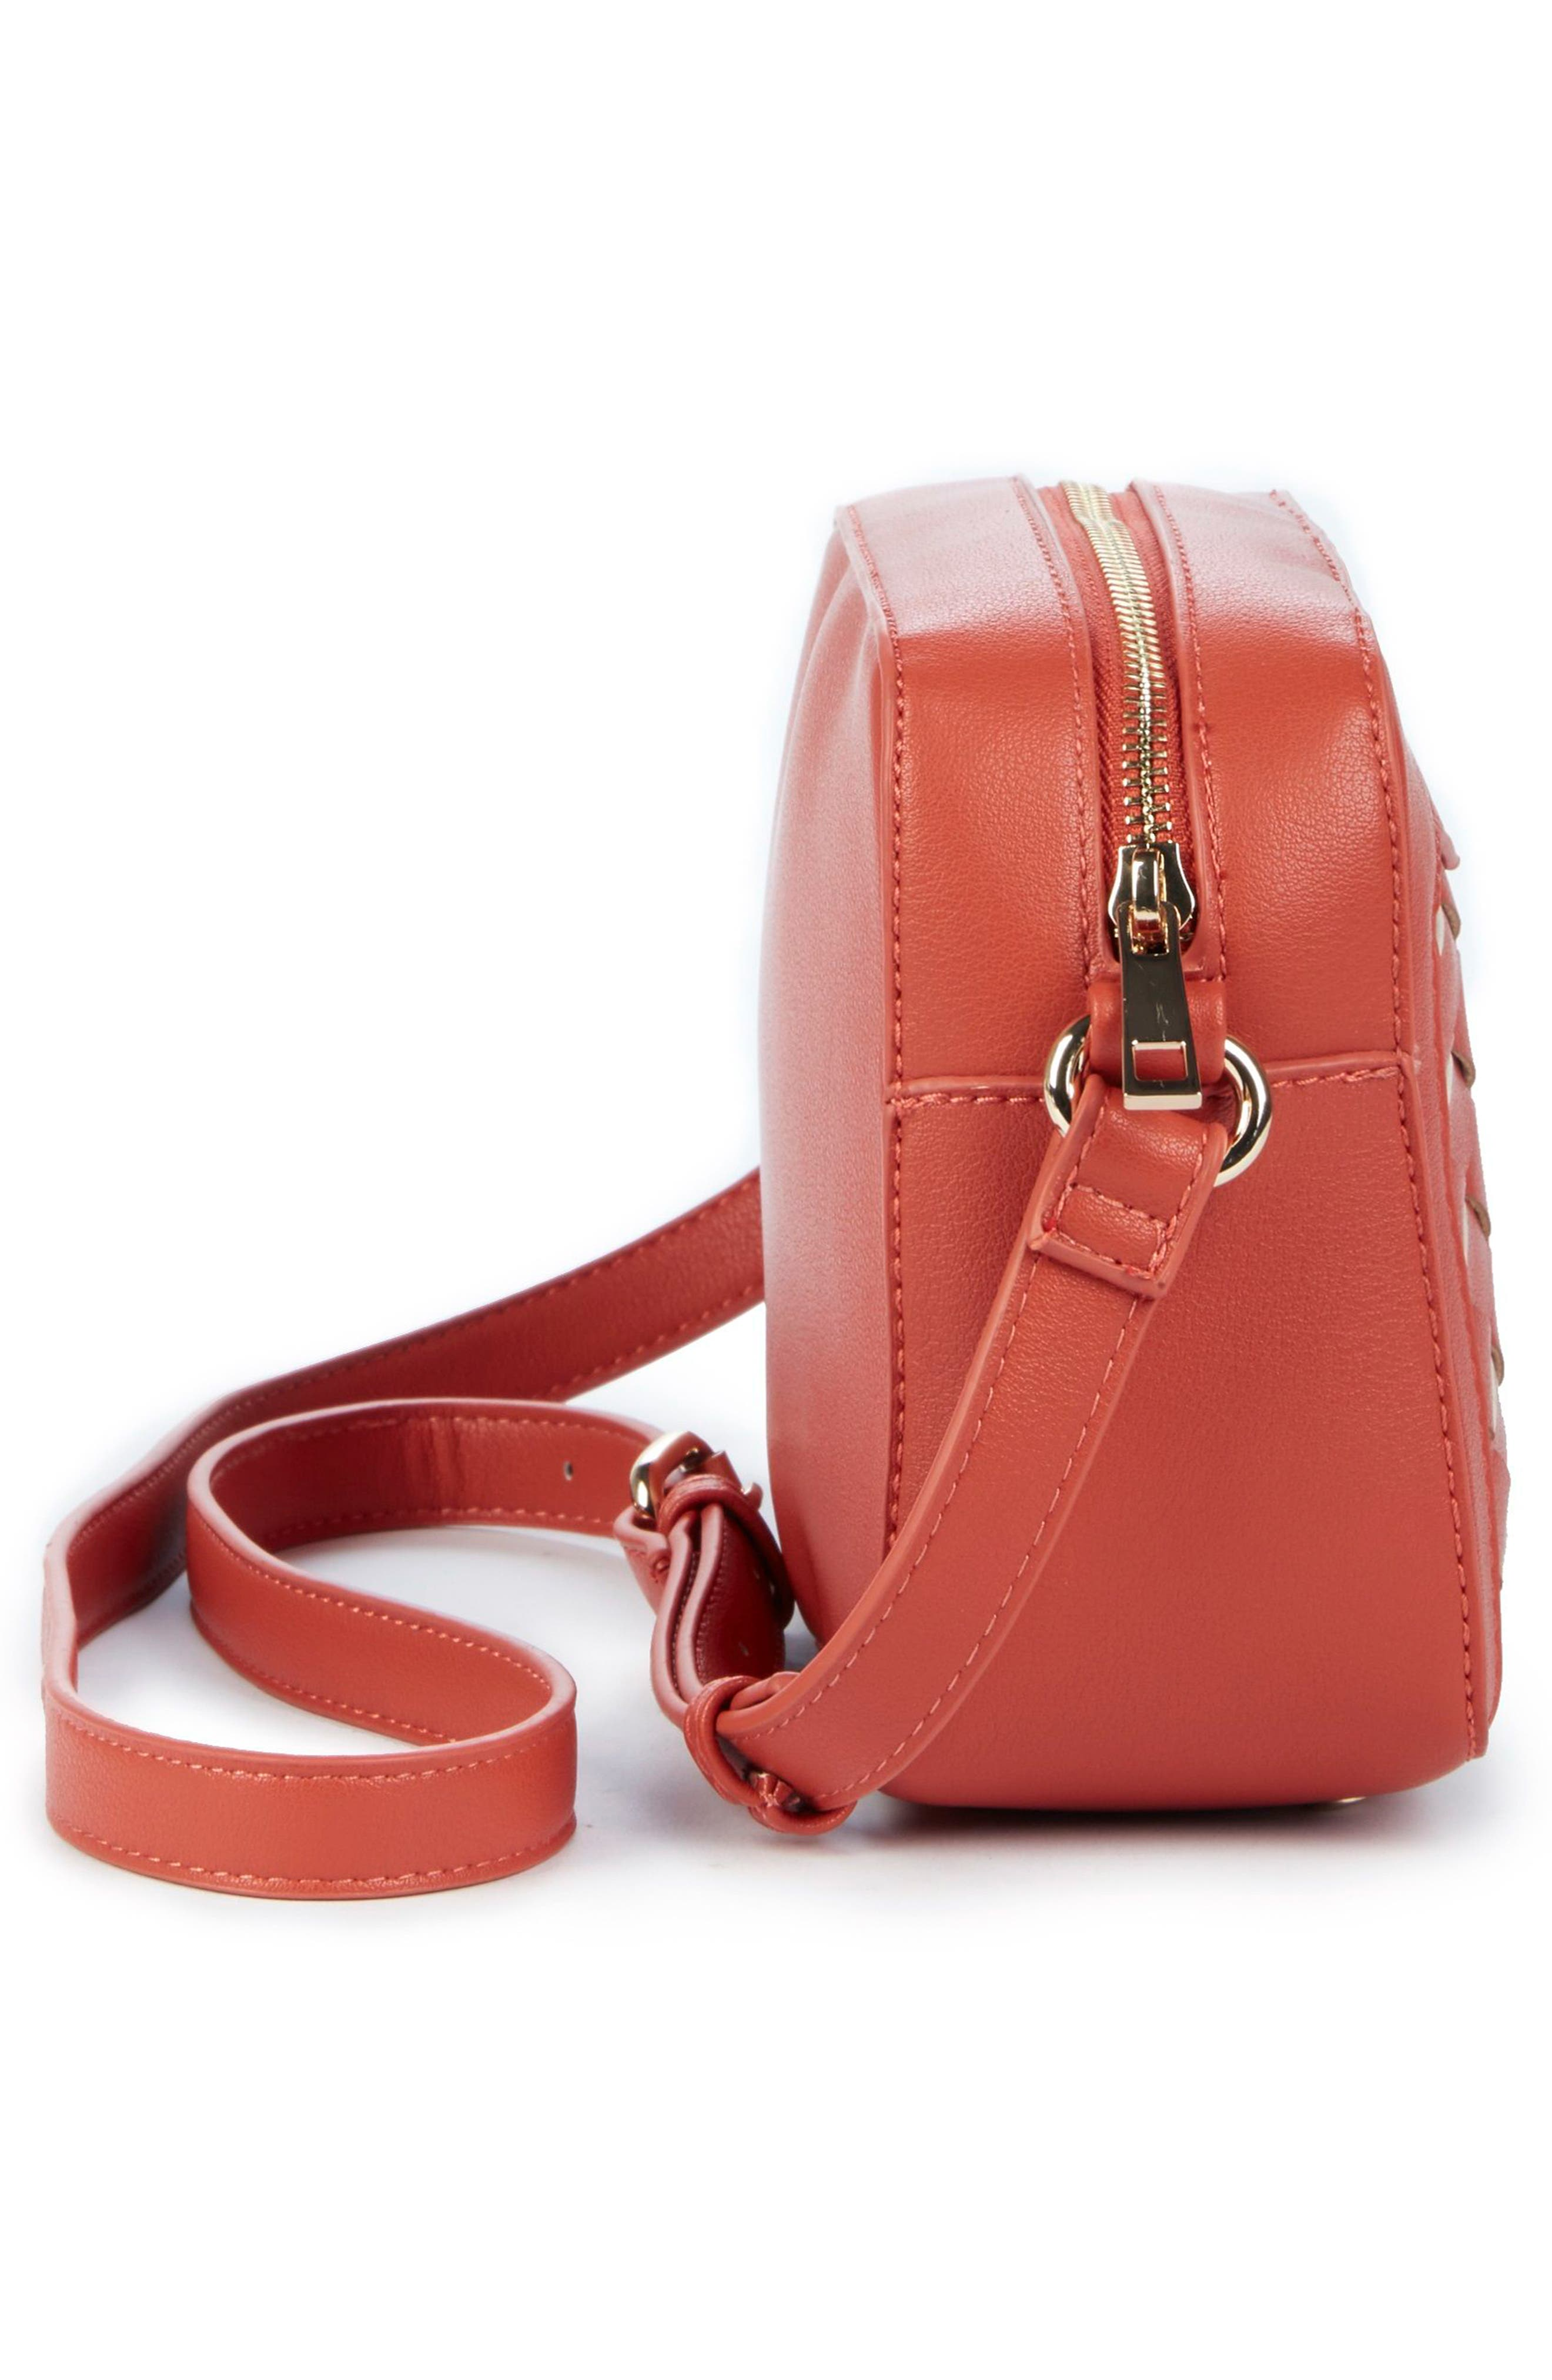 Hand Woven Faux Leather Crossbody Bag,                             Alternate thumbnail 4, color,                             Coral